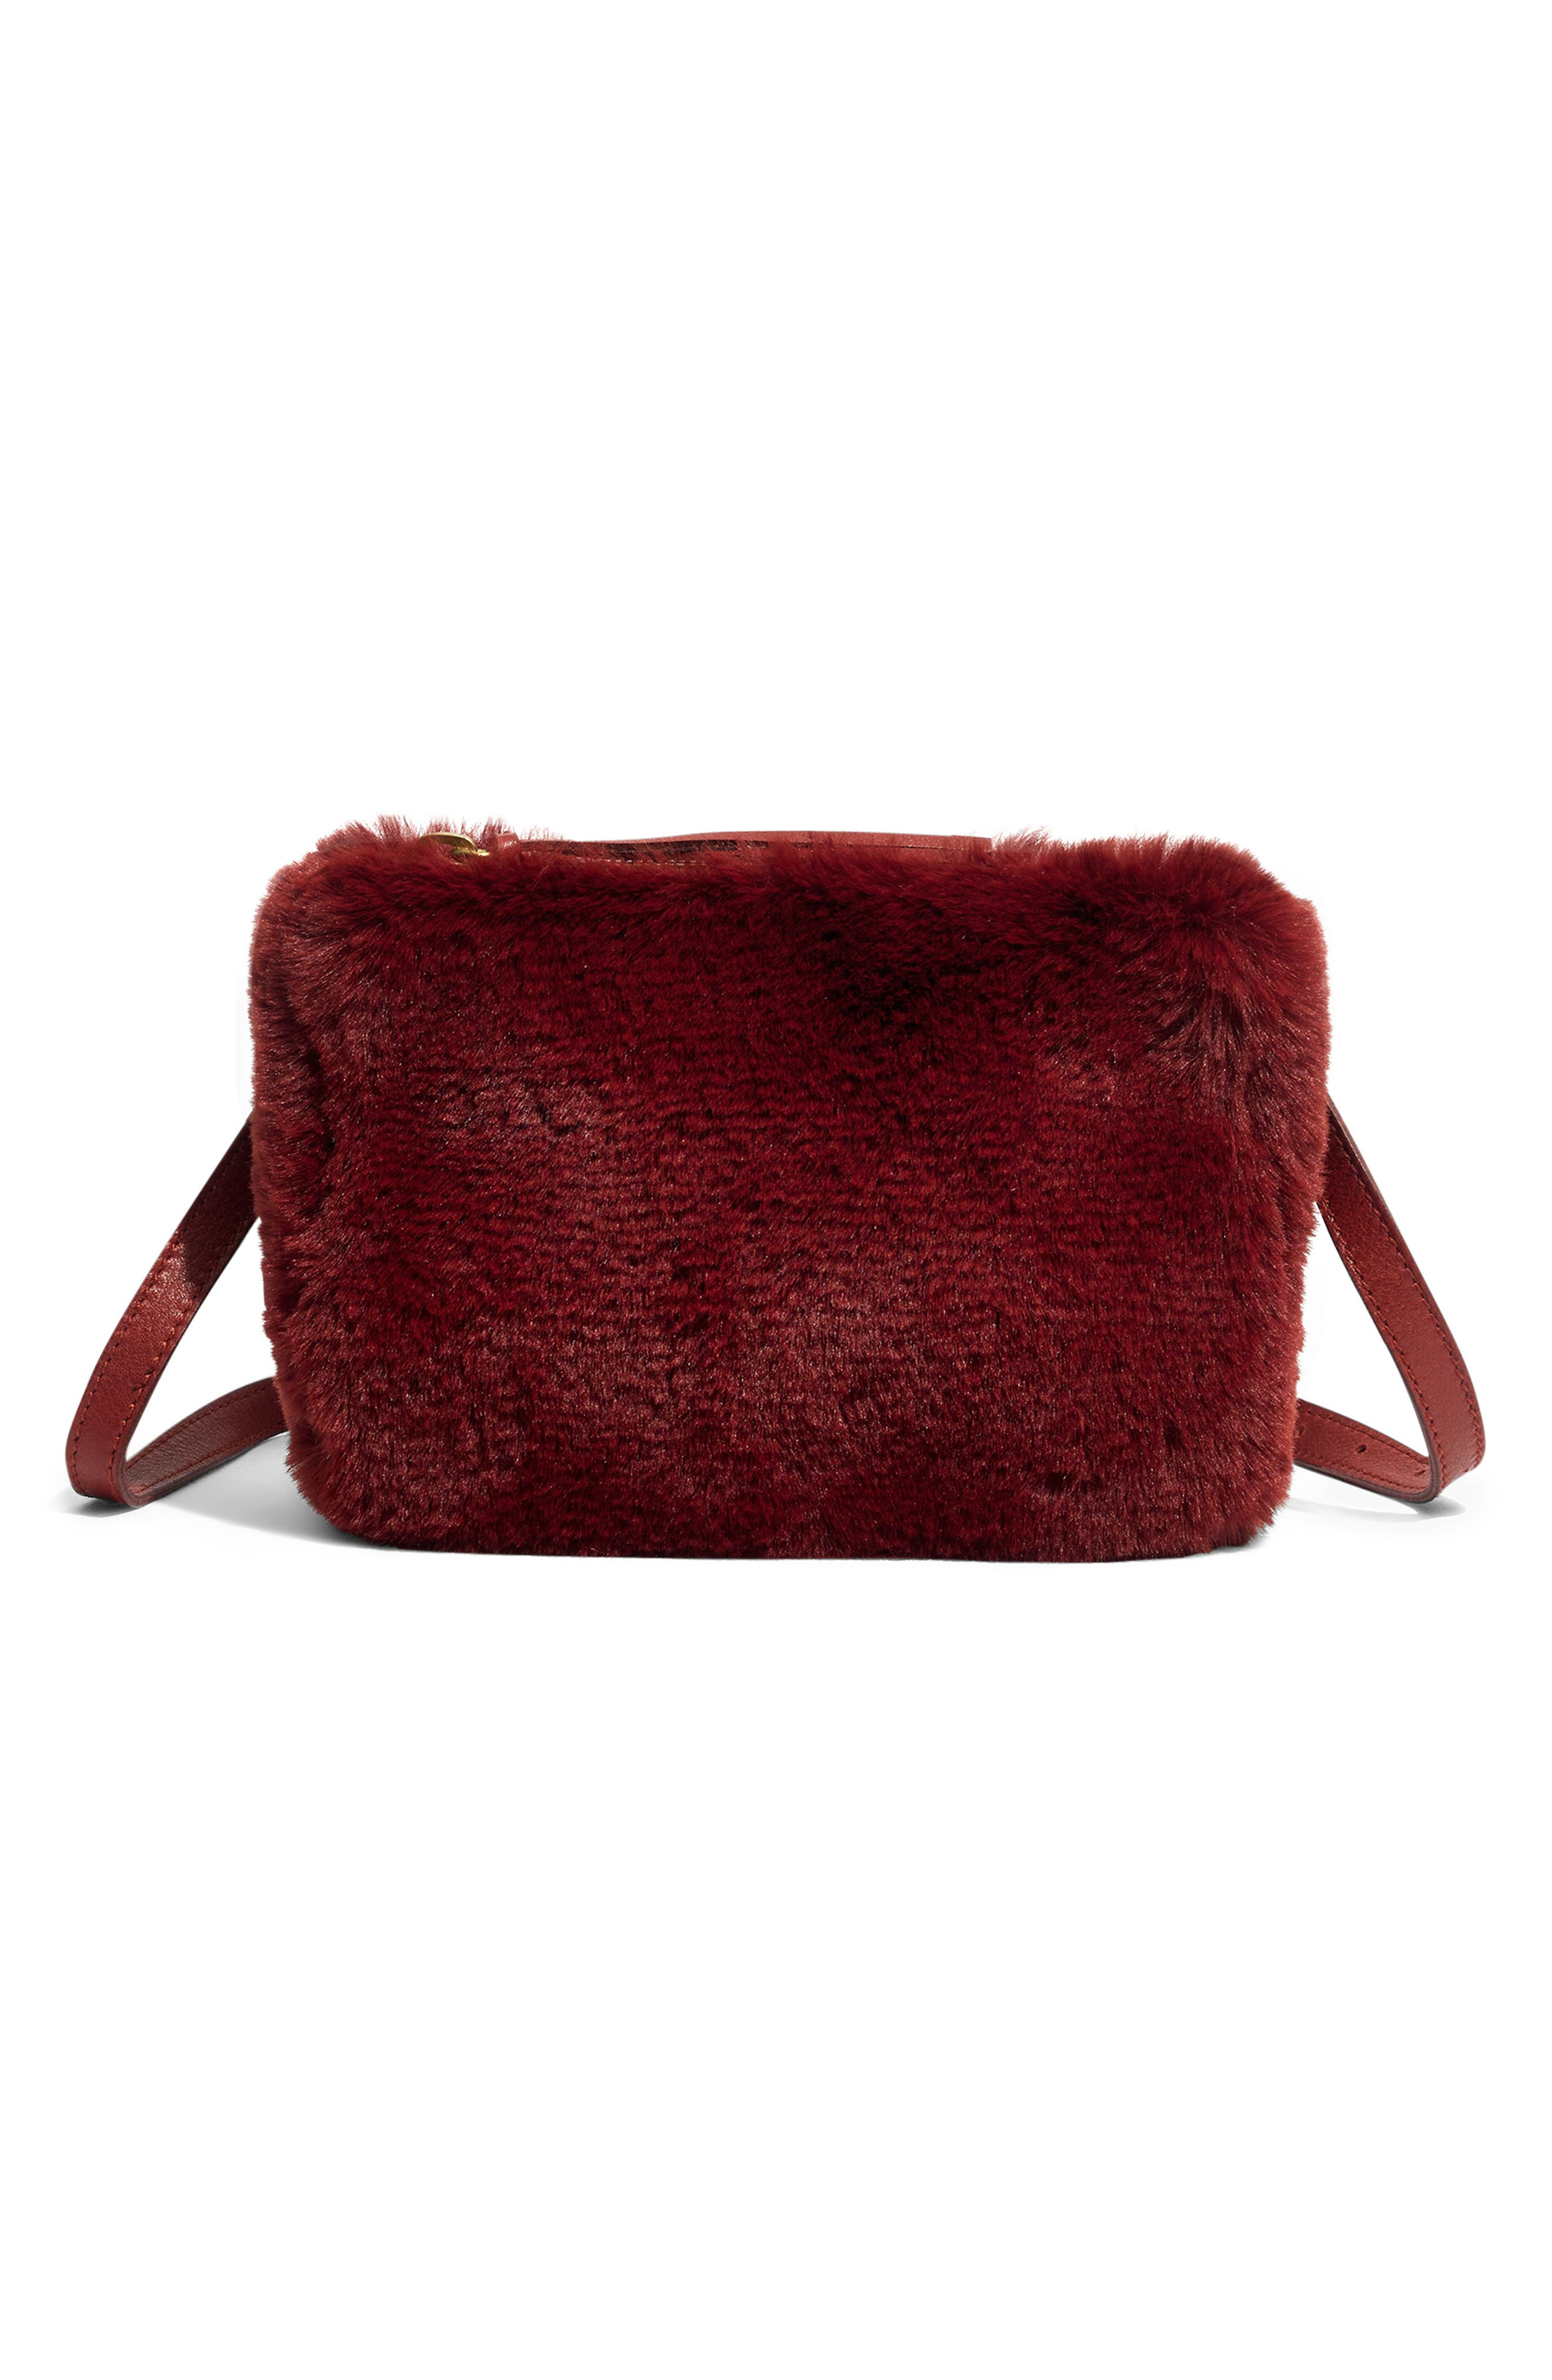 MADEWELL The Simple Pouch Faux Fur Belt Bag, Main, color, 600